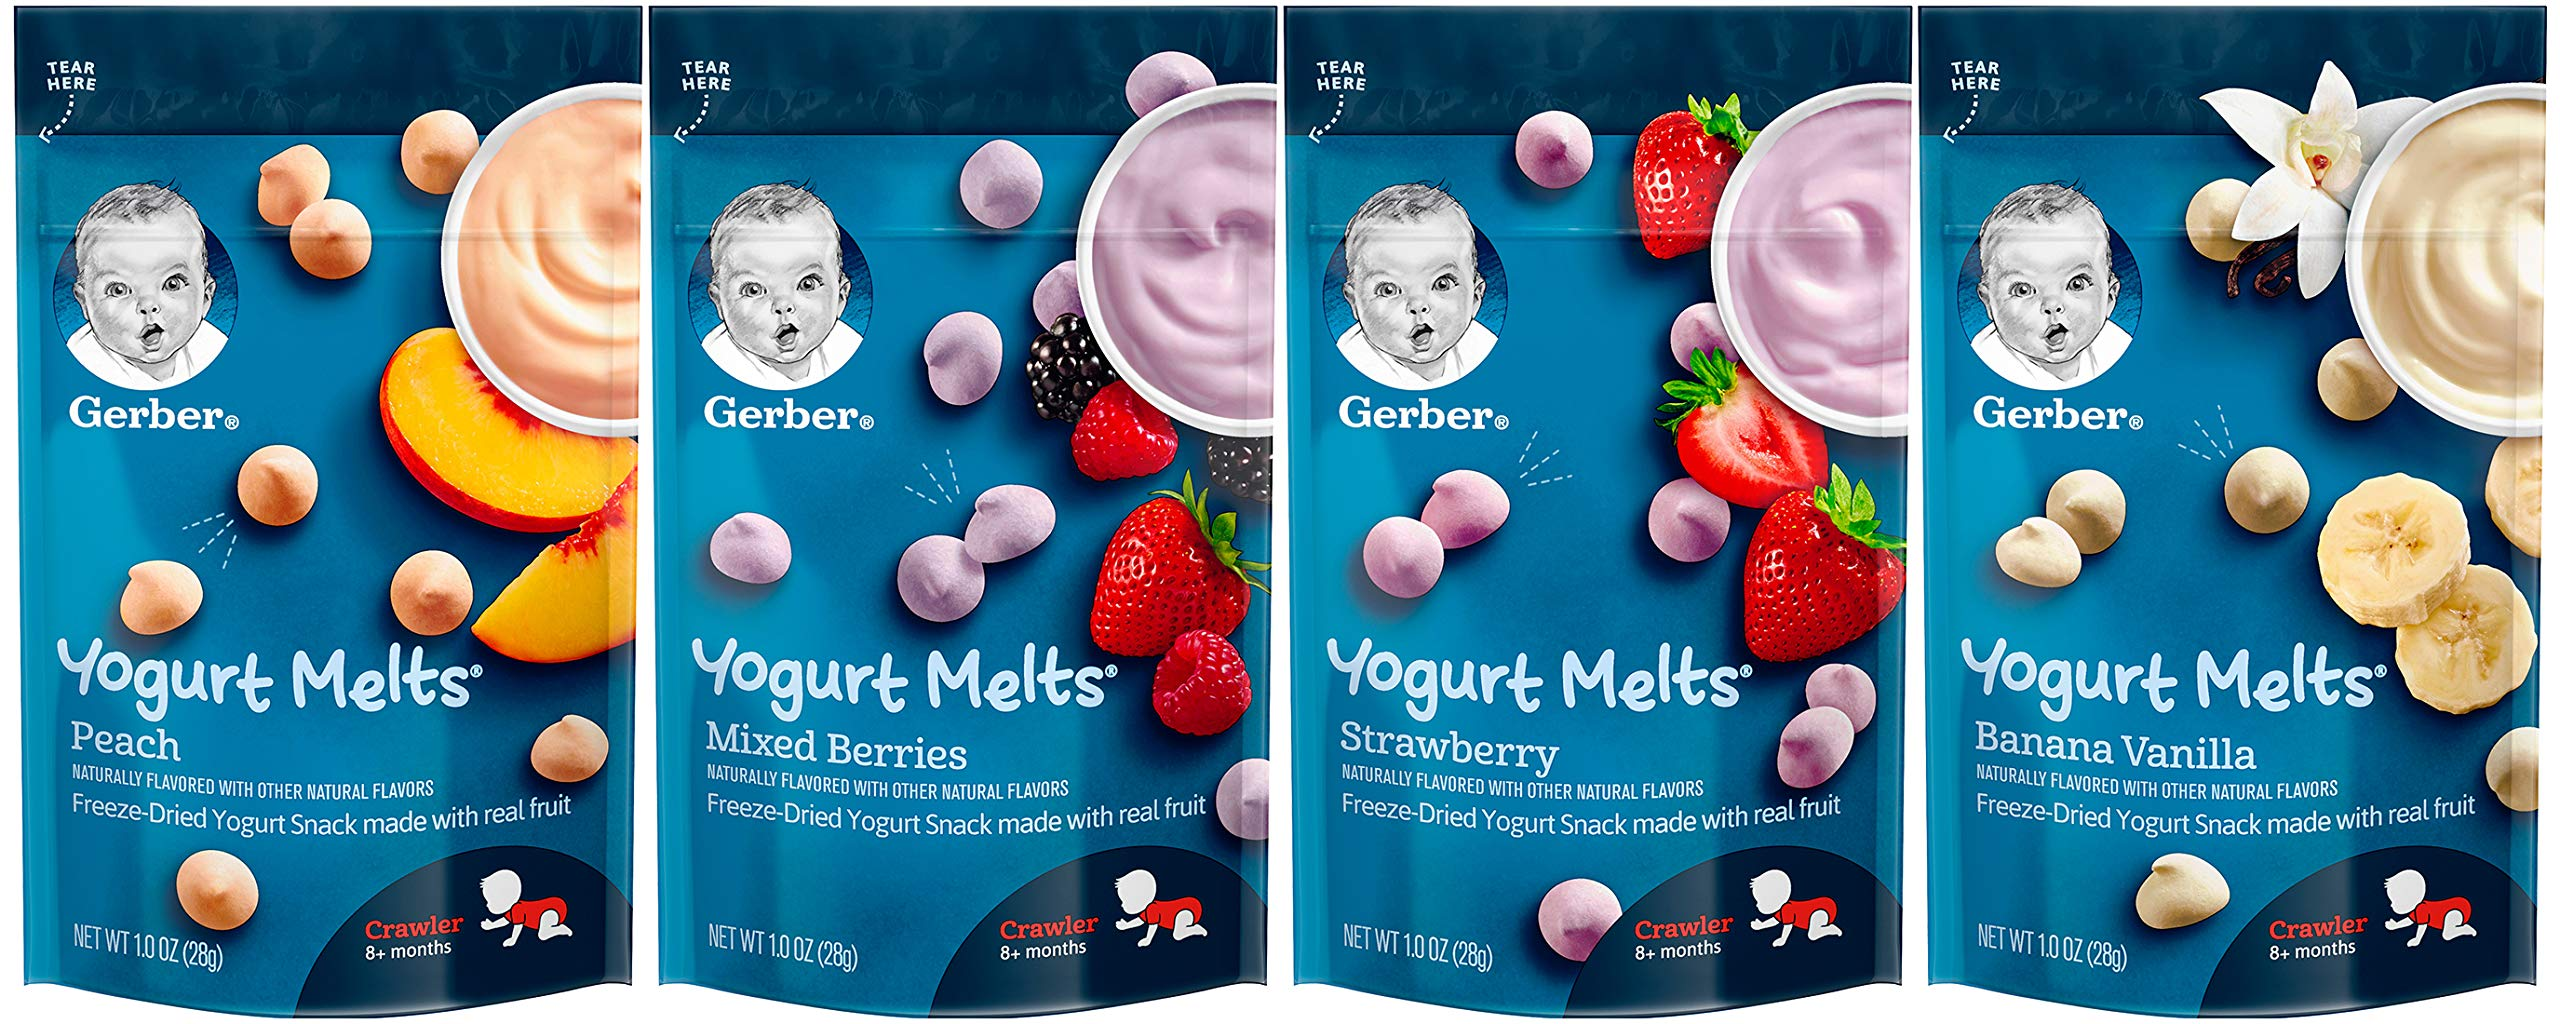 Gerber Yogurt Melts Variety Pack, 1 Peach, 1 Mixed Berries, 1 Strawberry, 1 Banana Vanilla, 1.0 oz Each (4 CT)